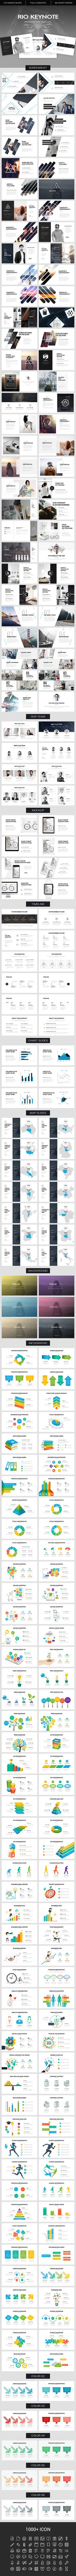 Rio Keynote Template. Download here: http://graphicriver.net/item/rio-keynote-template/16338079?ref=ksioks